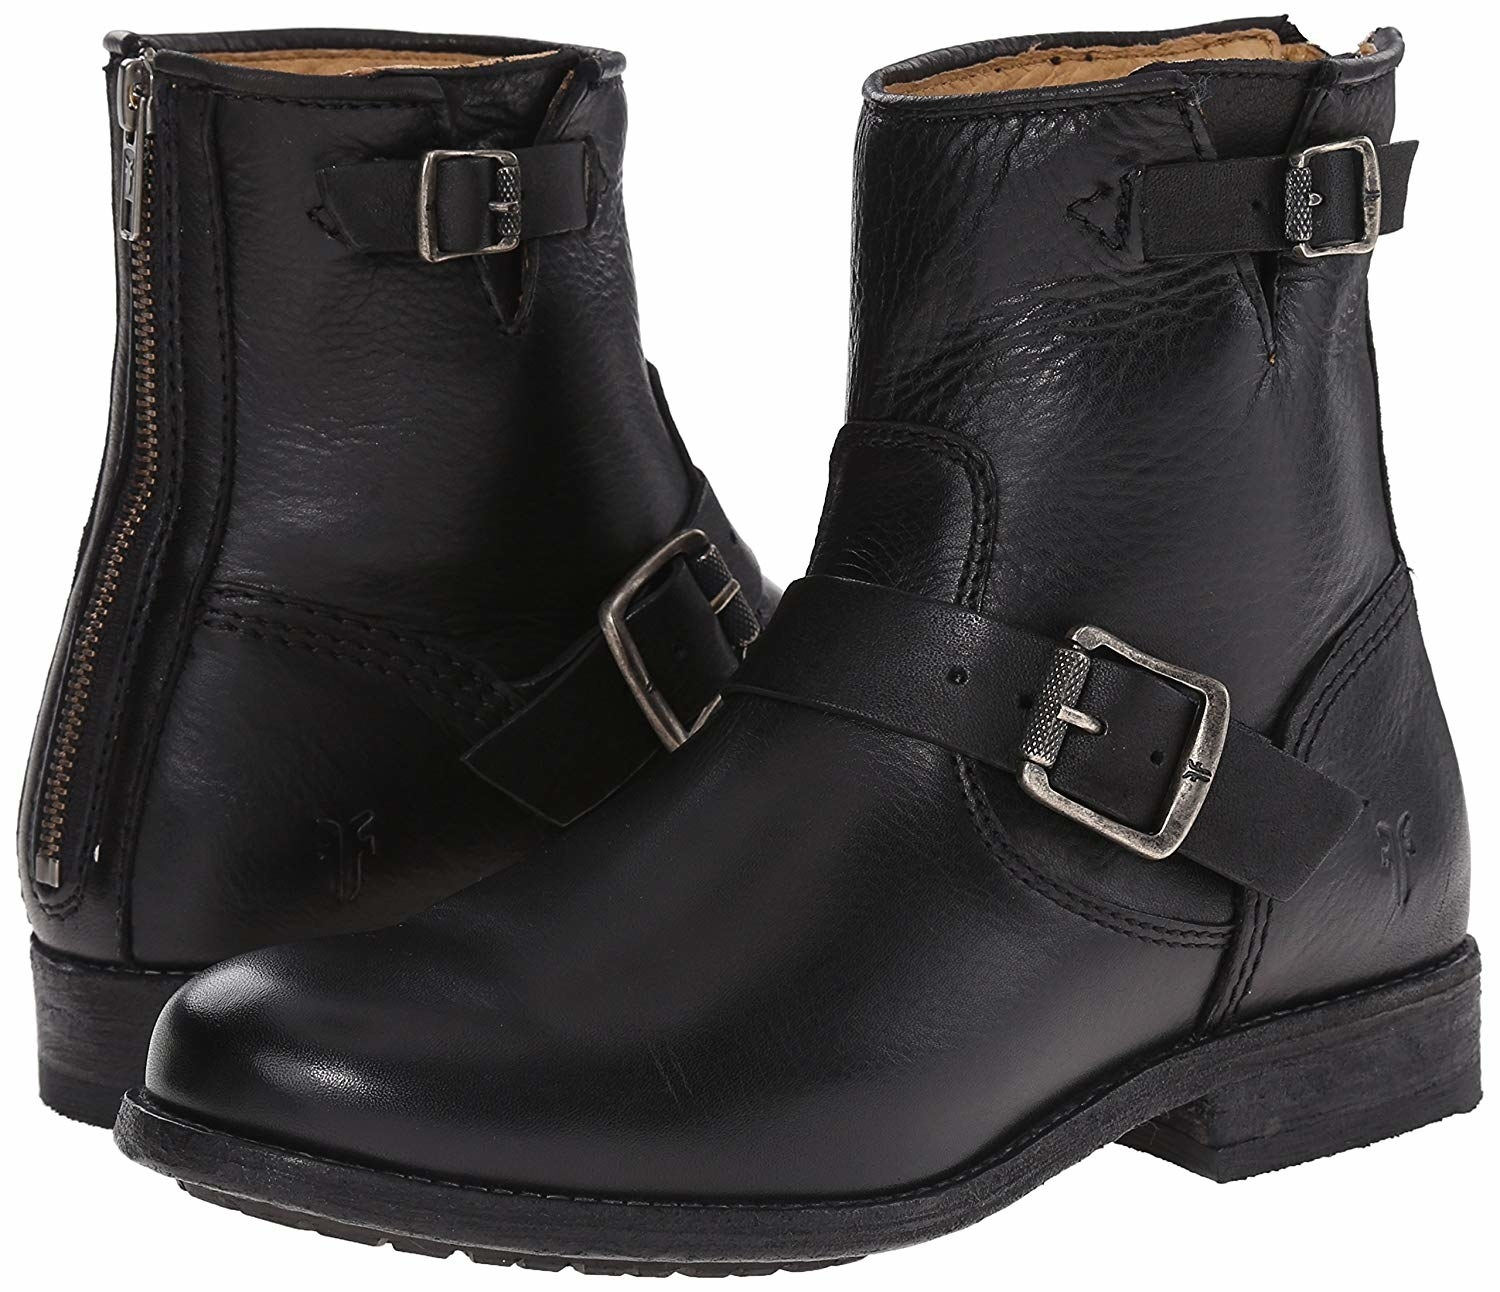 A pair of the Frye Engineer Boot in black.